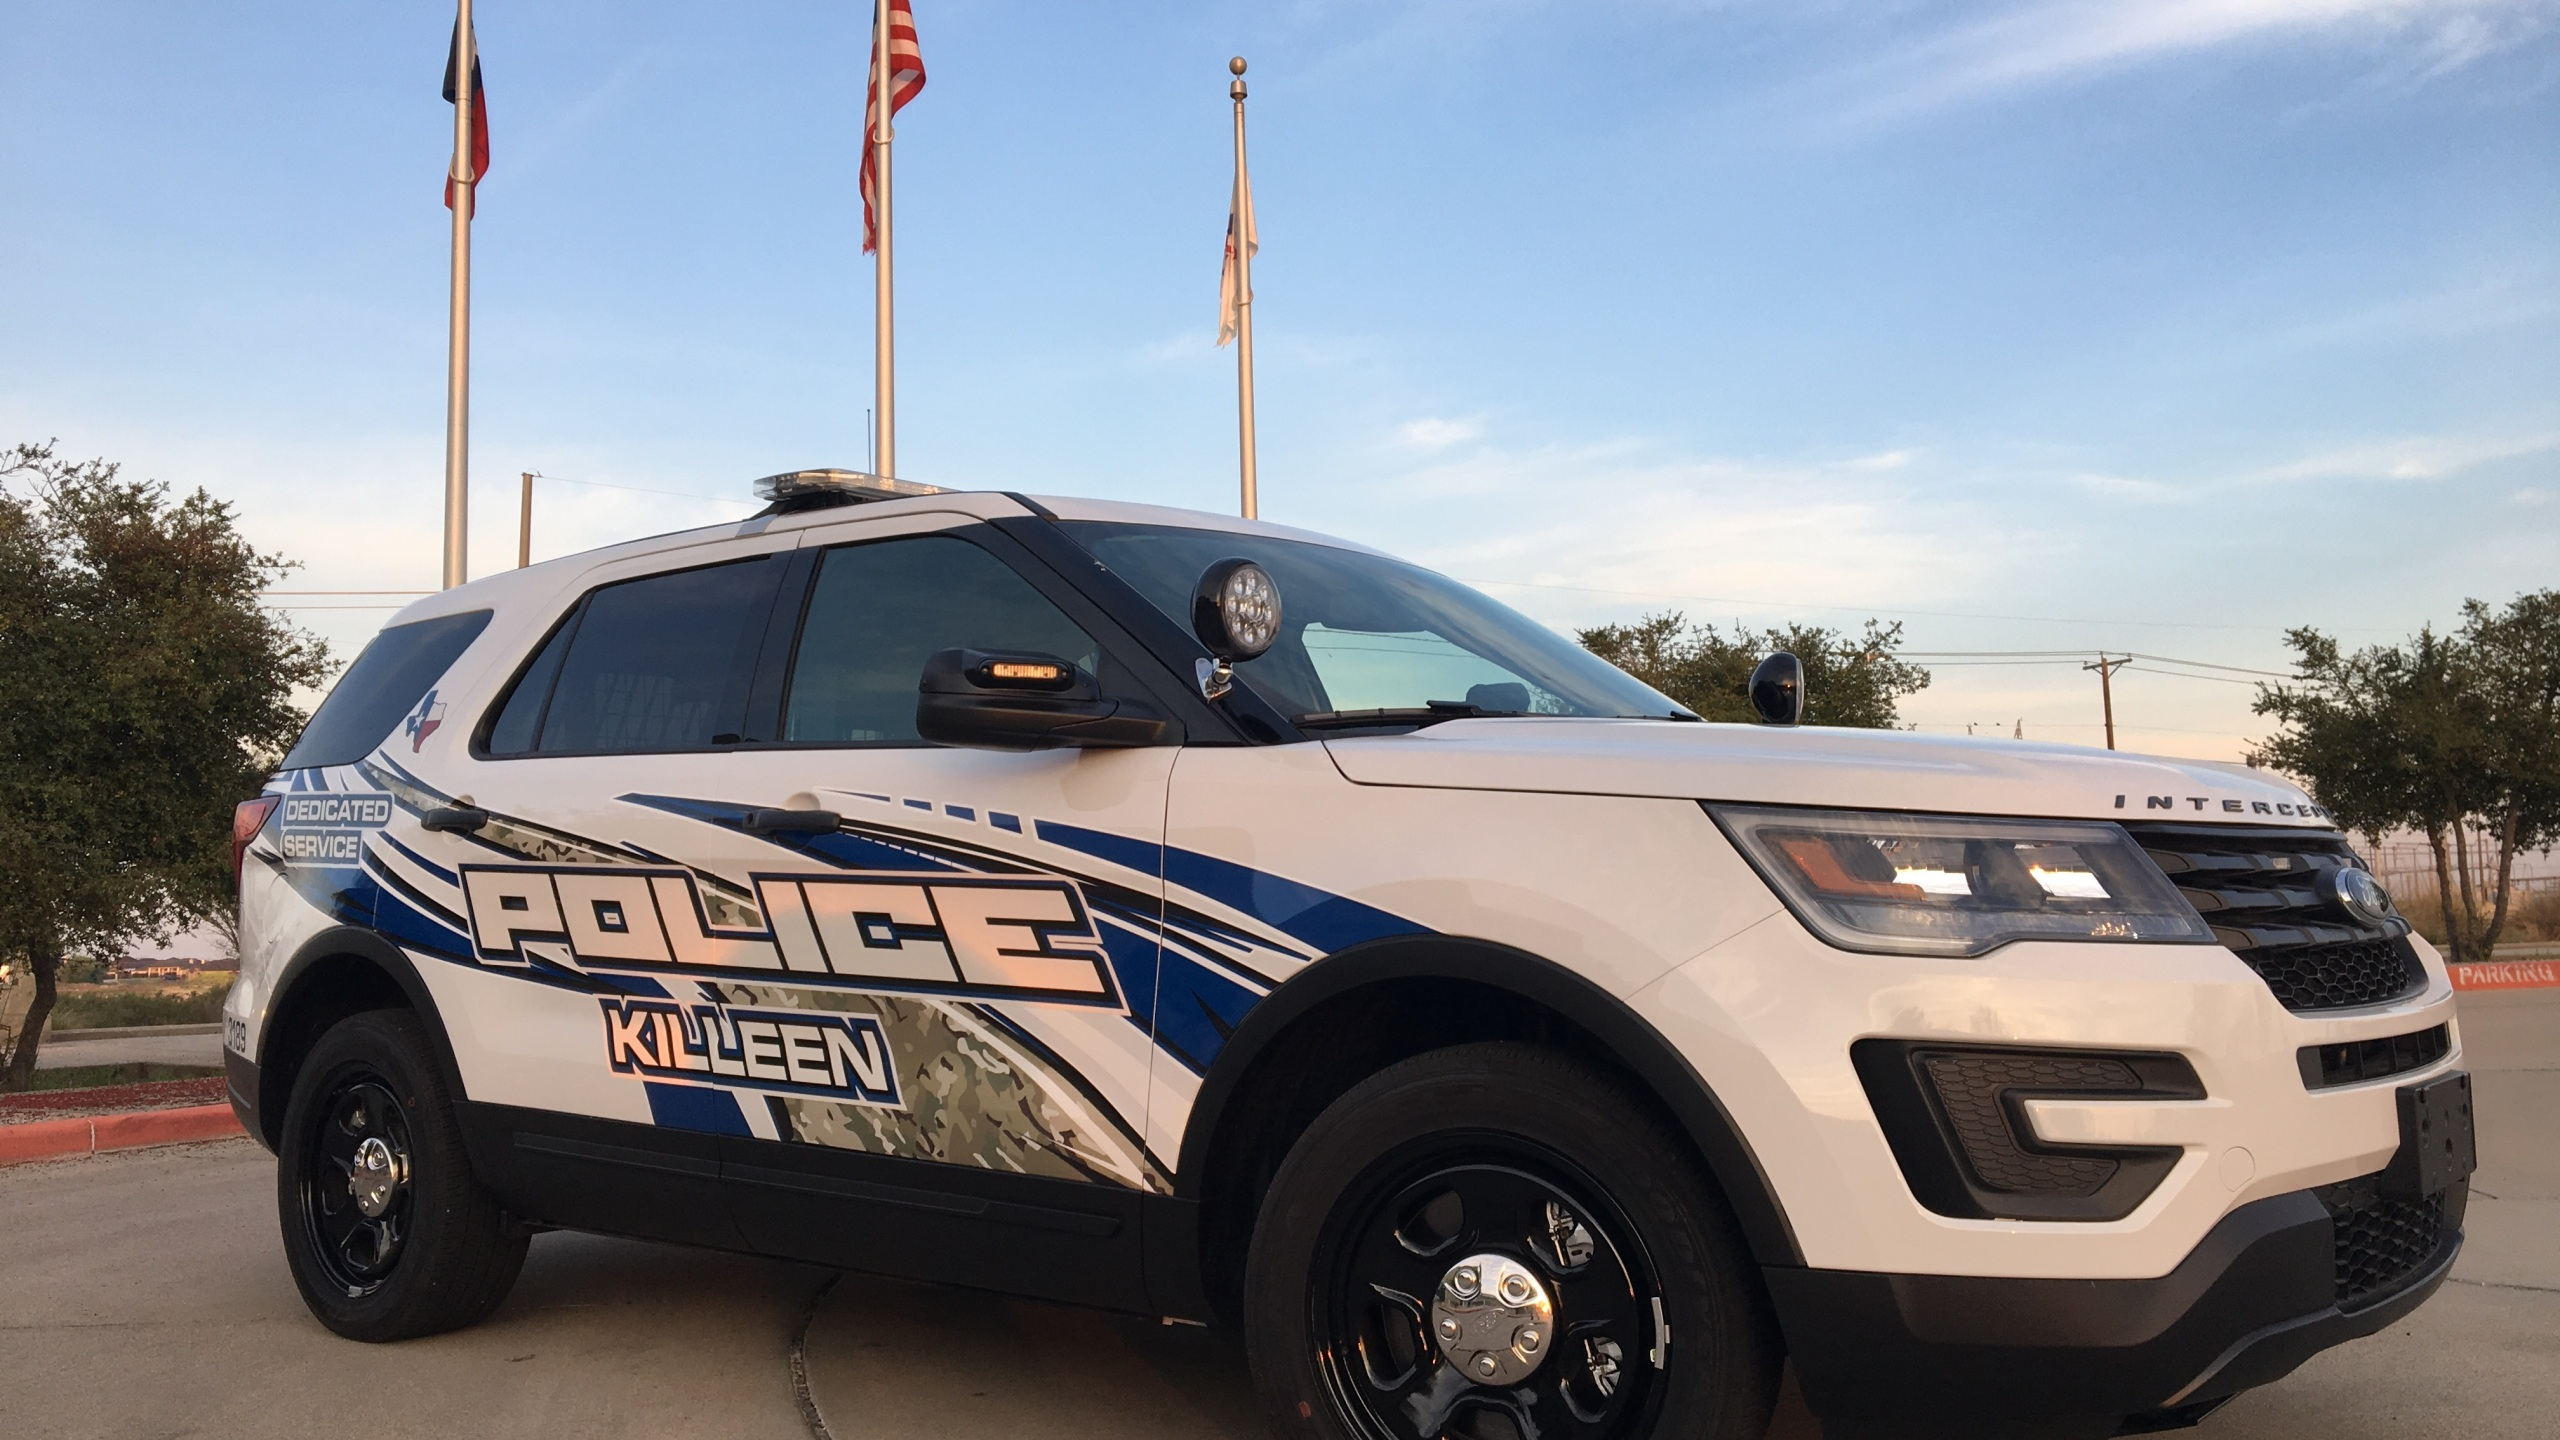 Man critical after Killeen hit and run